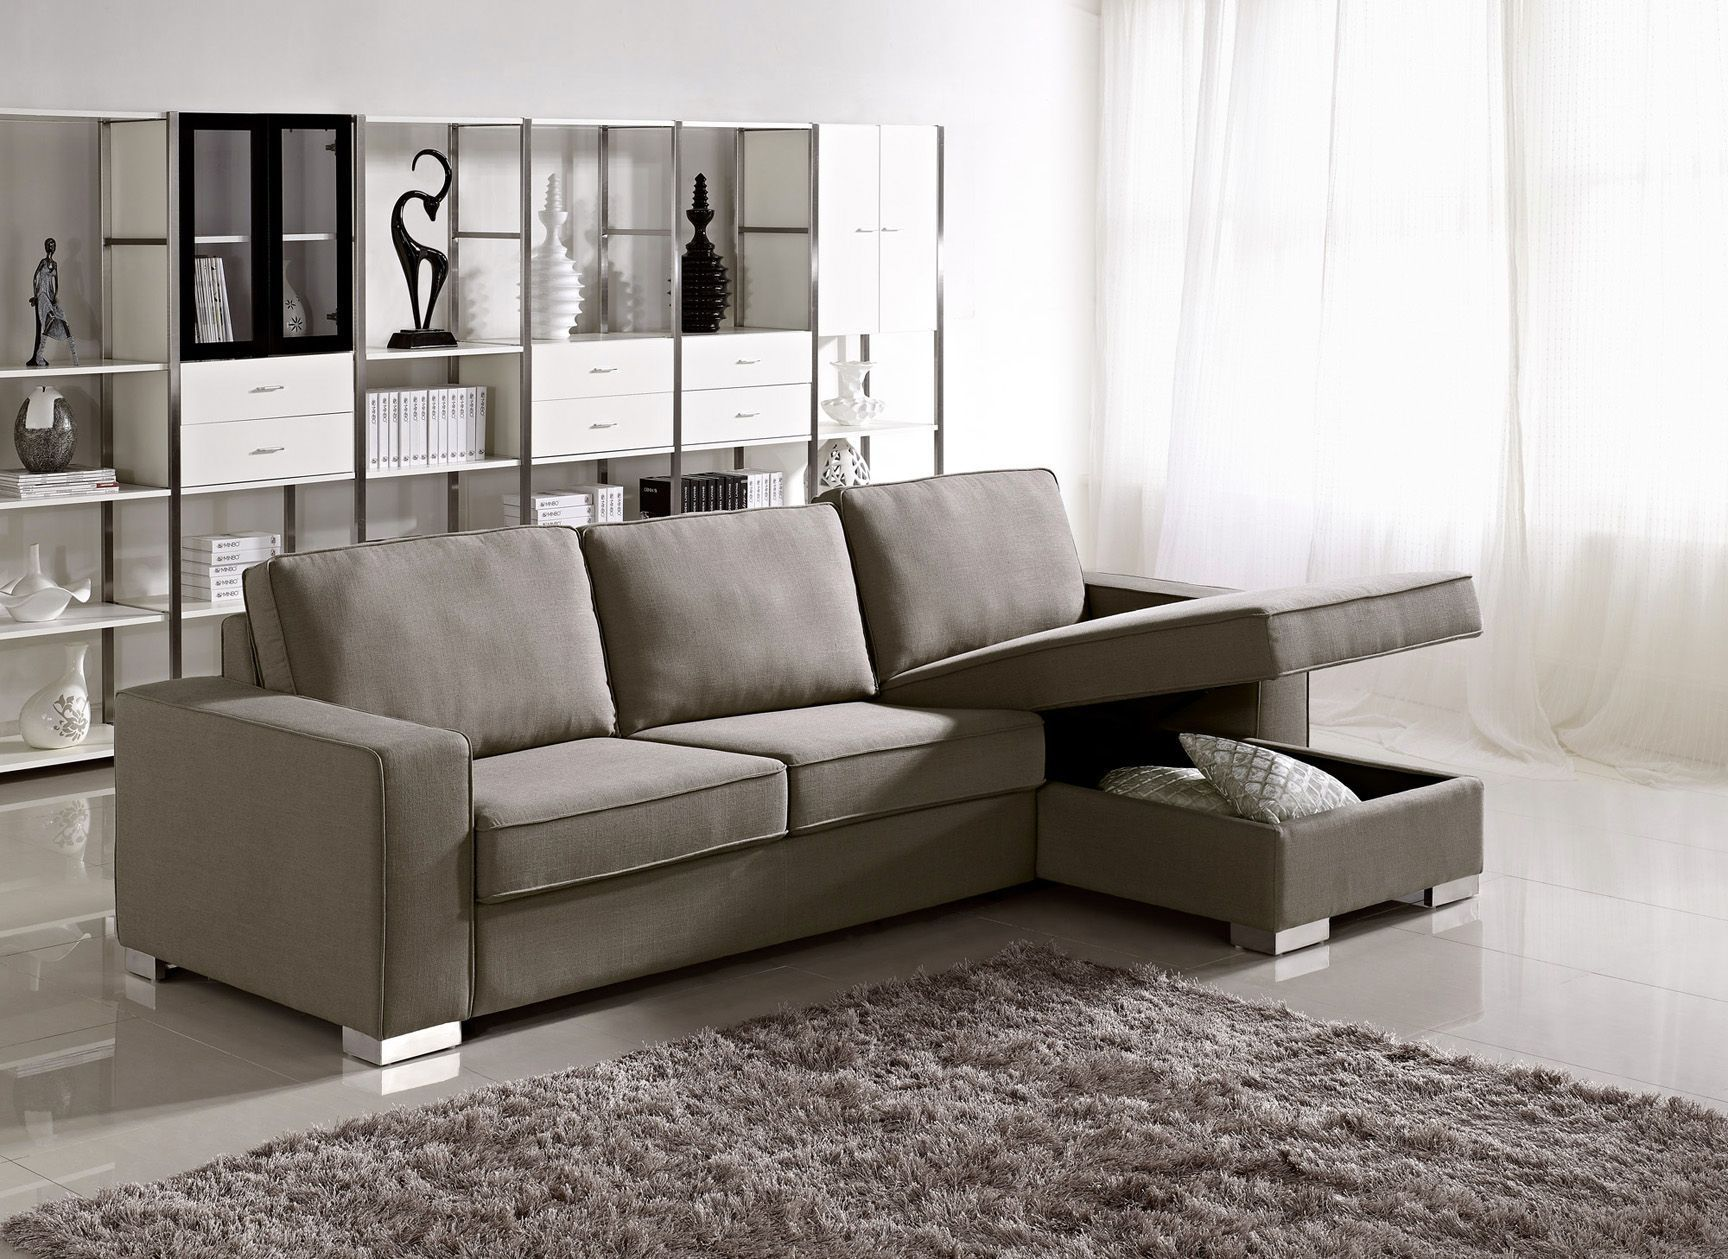 Bust of The Best Apartment Sectional Sofas Solving Function and Style Issues